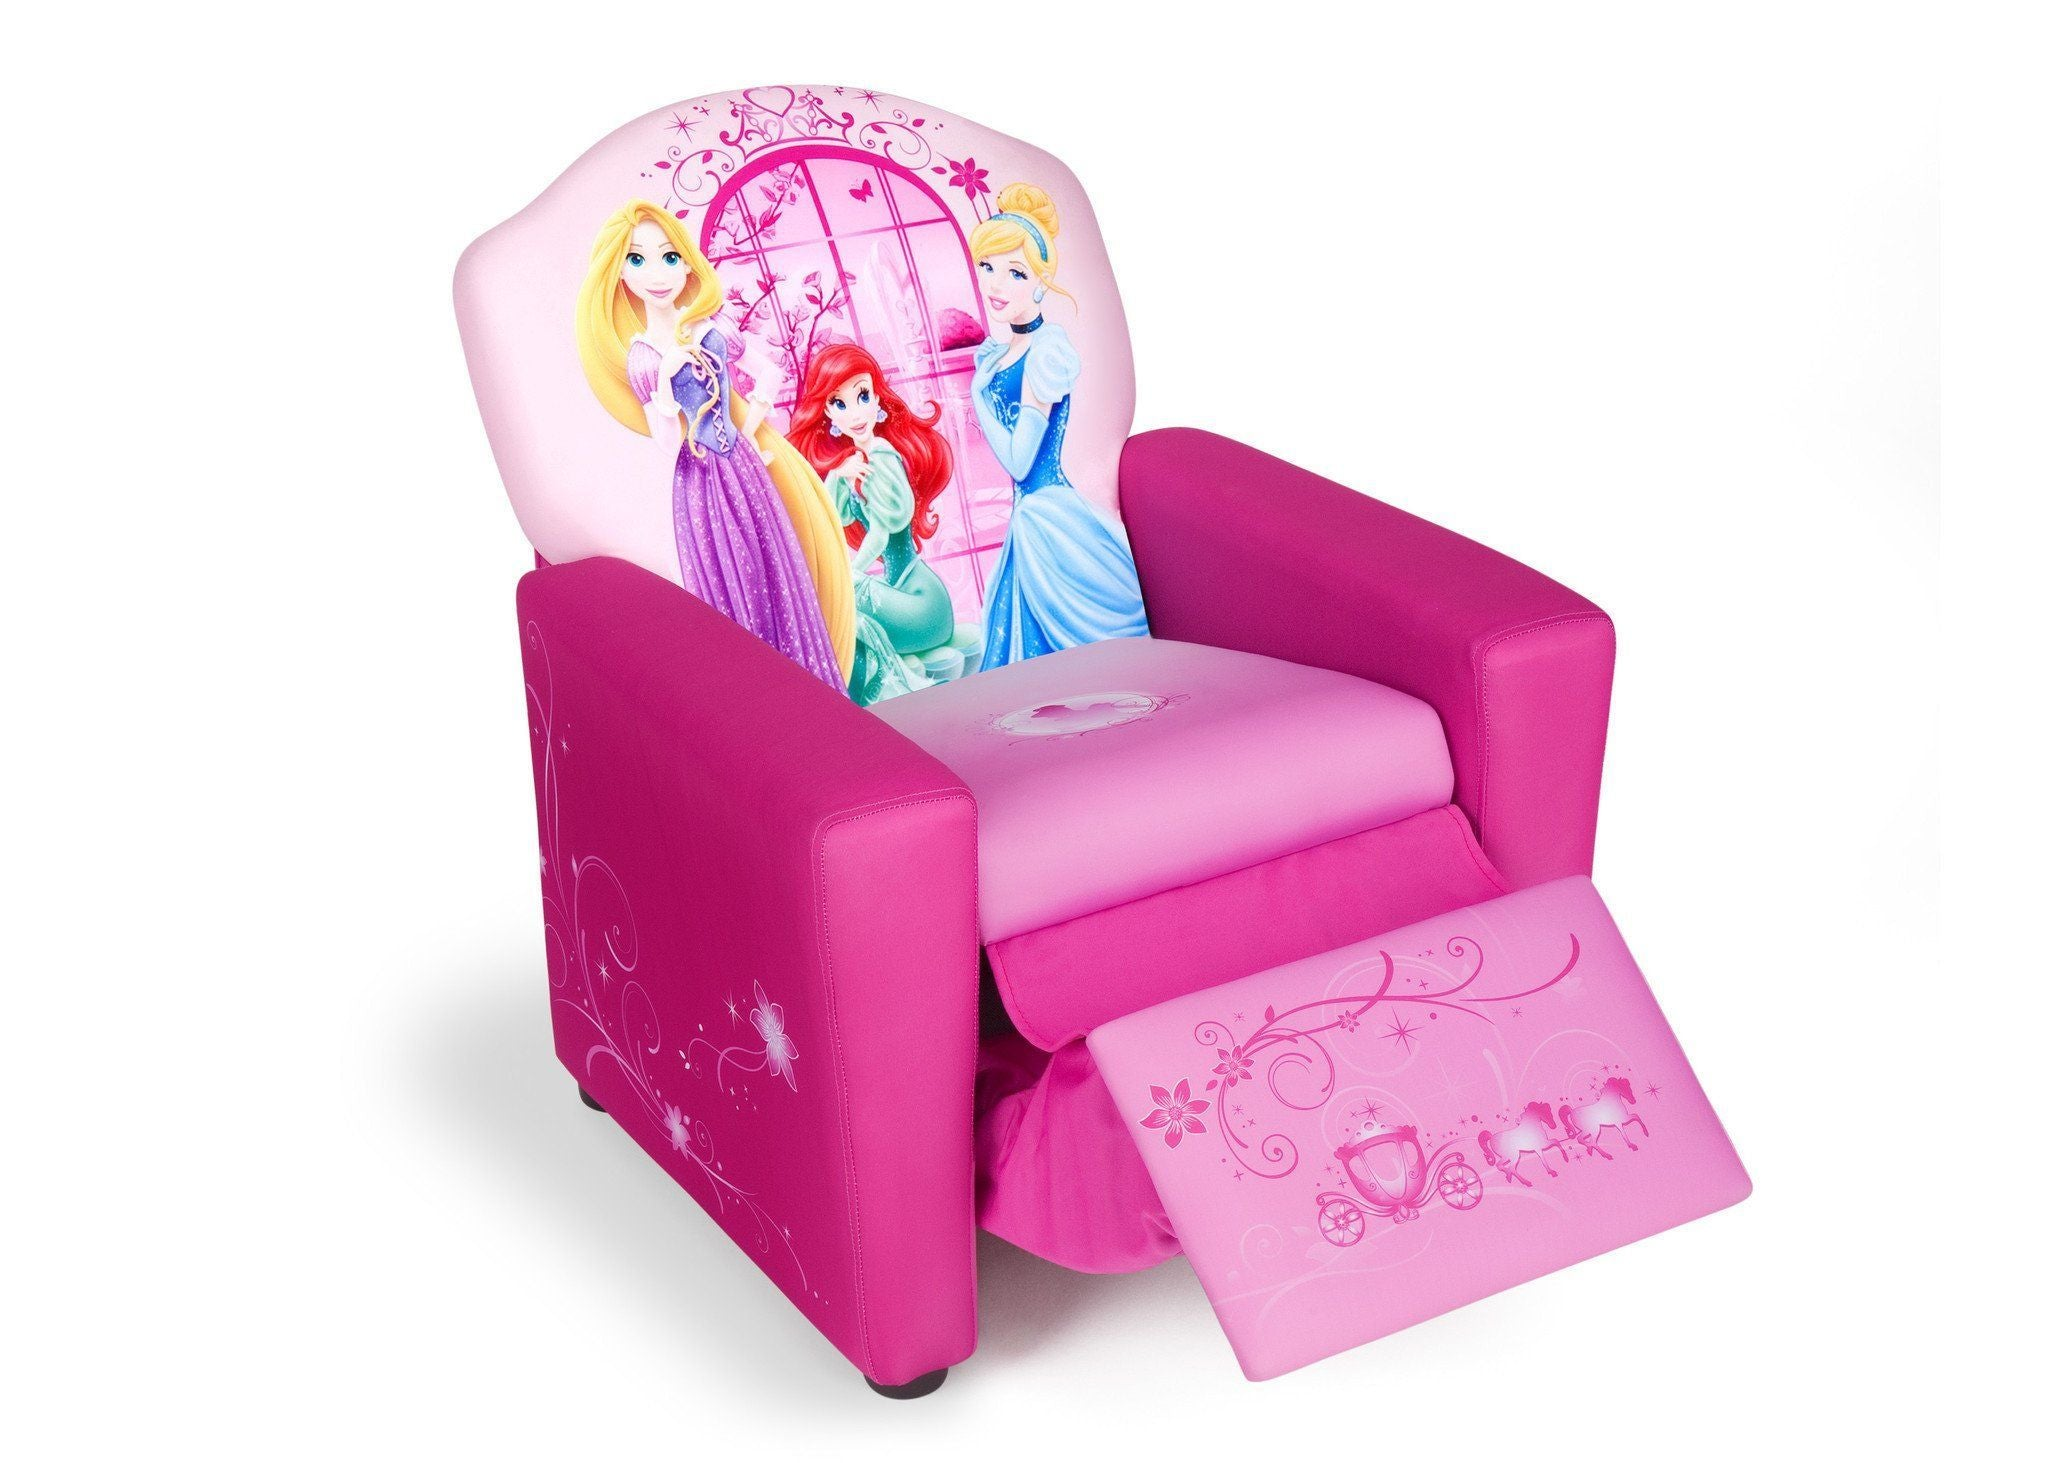 ... Delta Children Style 1 Princess Upholstered Recliner Chair, Right View  With Footrest Option A2a ...